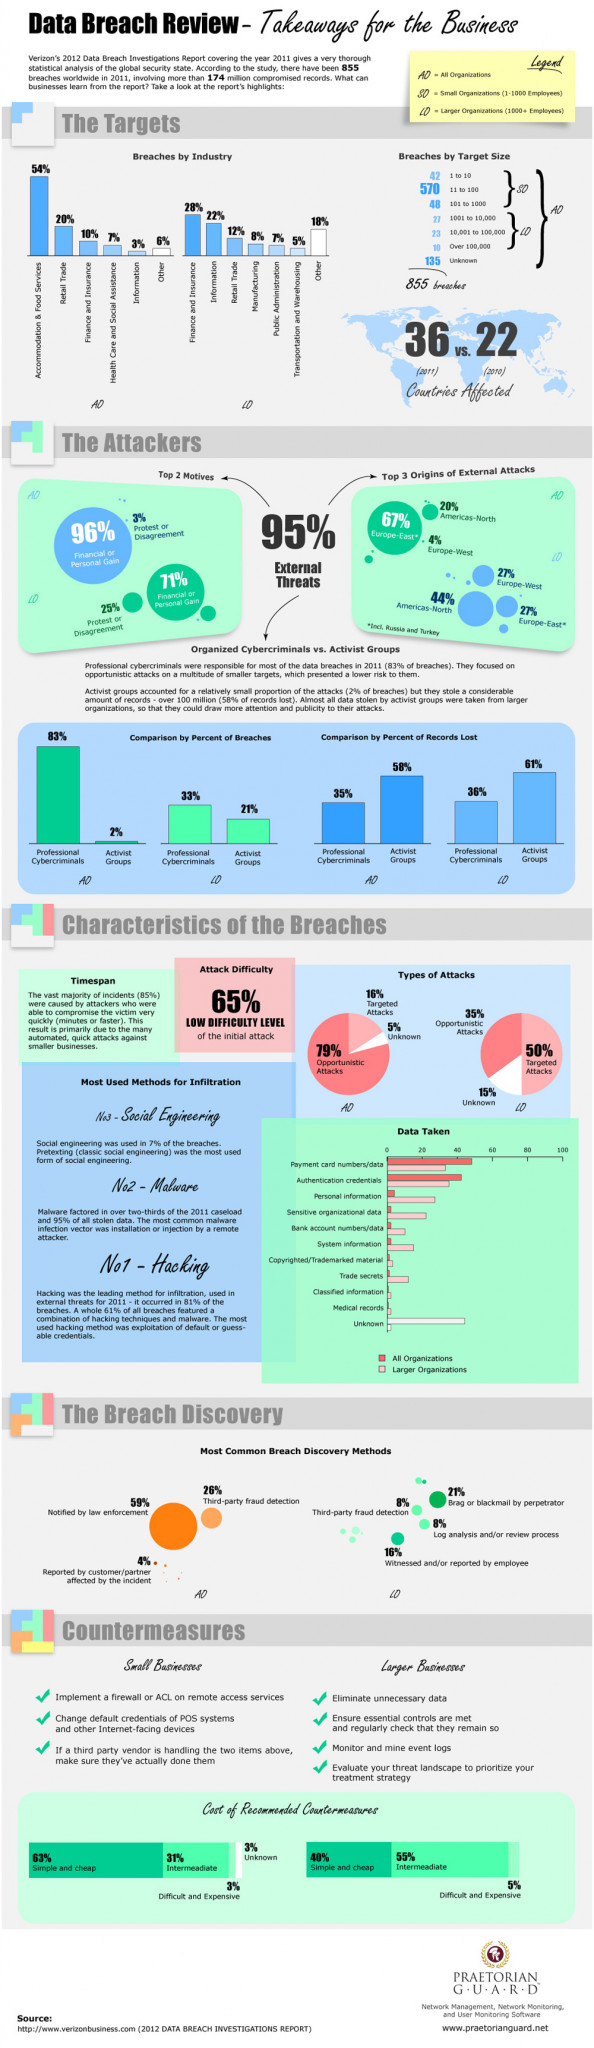 Data Breach Review - Takeaways for the Business Infographic